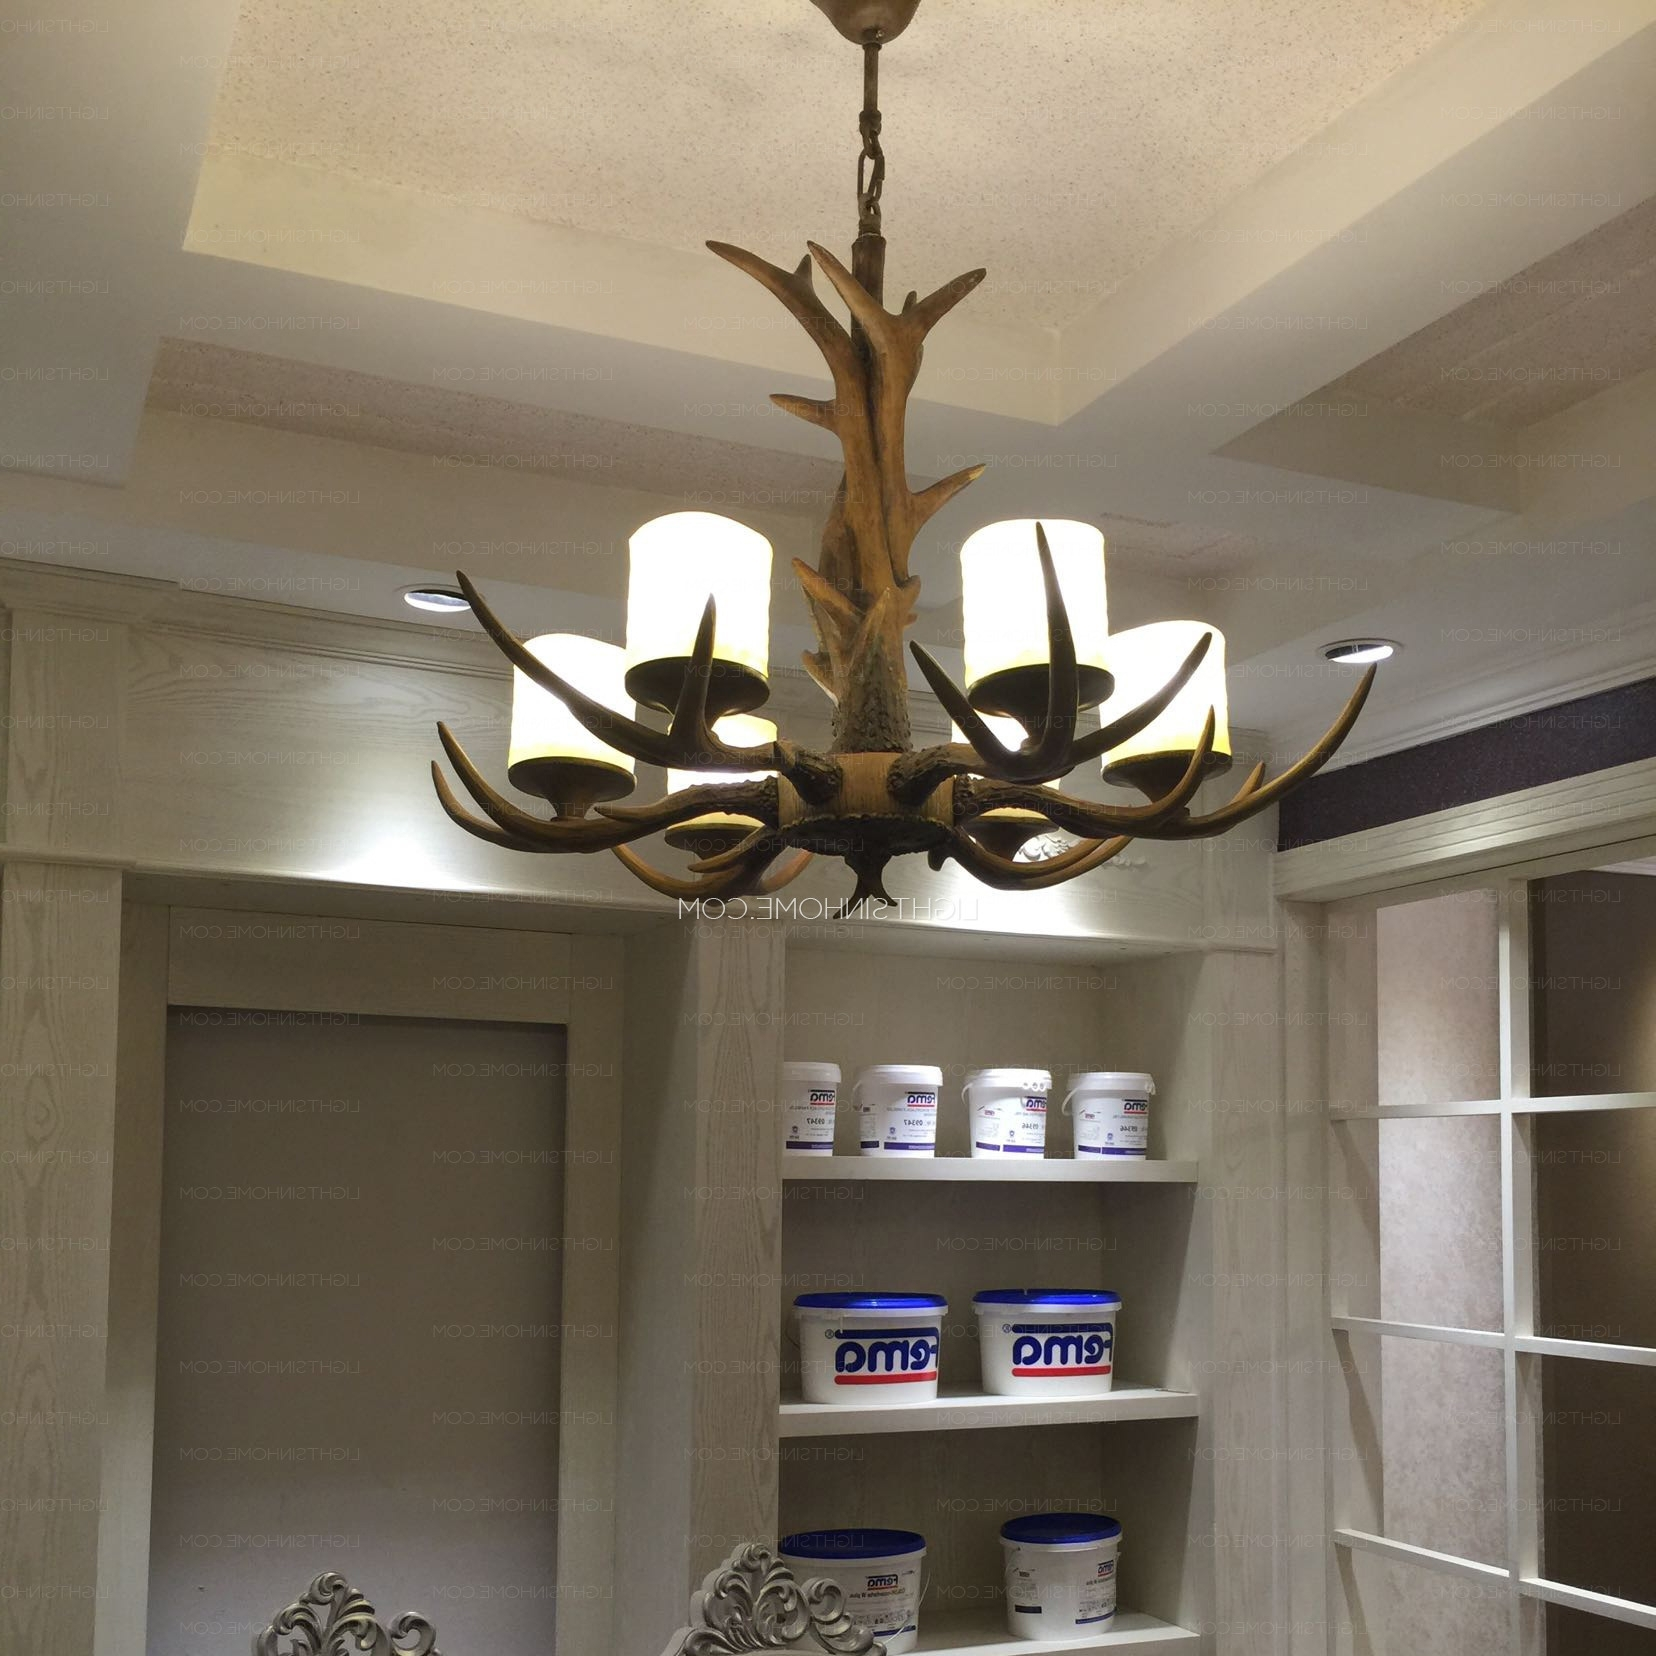 6 Light Resin Cylinder Shade Glass Antler Chandelier Intended For 2019 Modern Antler Chandelier (Gallery 15 of 20)